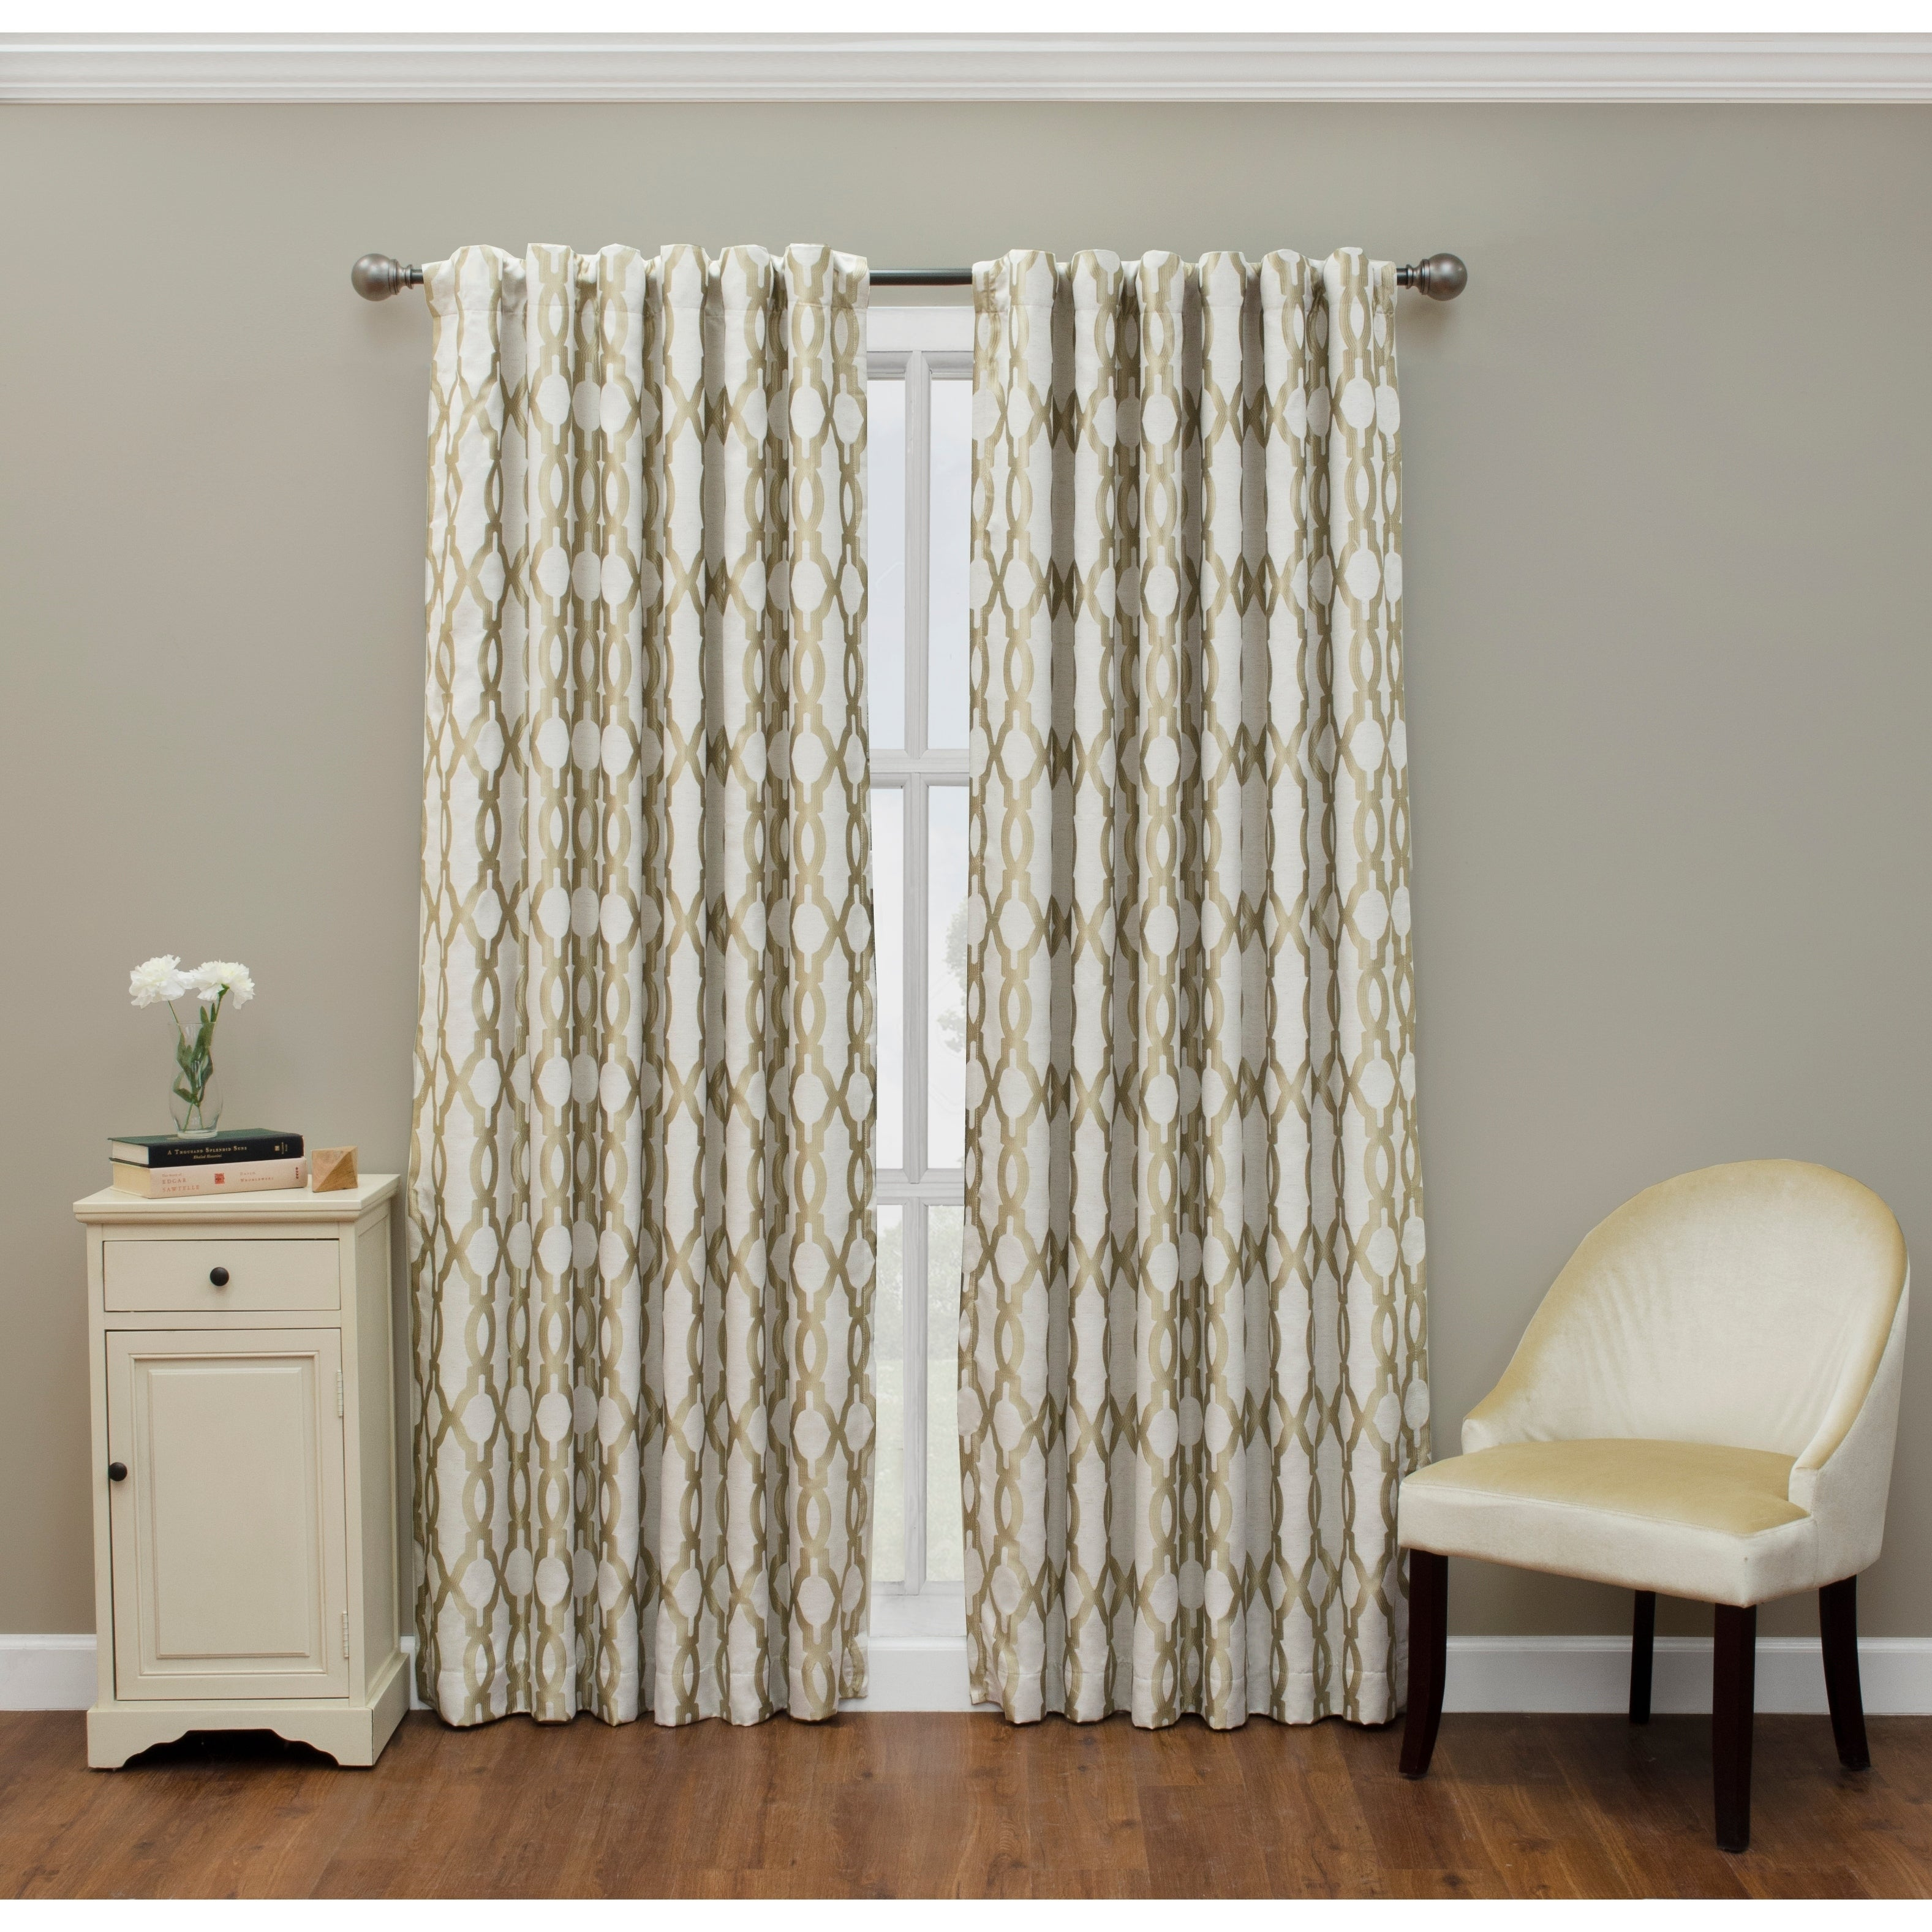 Eclipse Dixon Thermalayer Blackout Curtain With Eclipse Caprese Thermalayer Blackout Window Curtains (View 11 of 20)